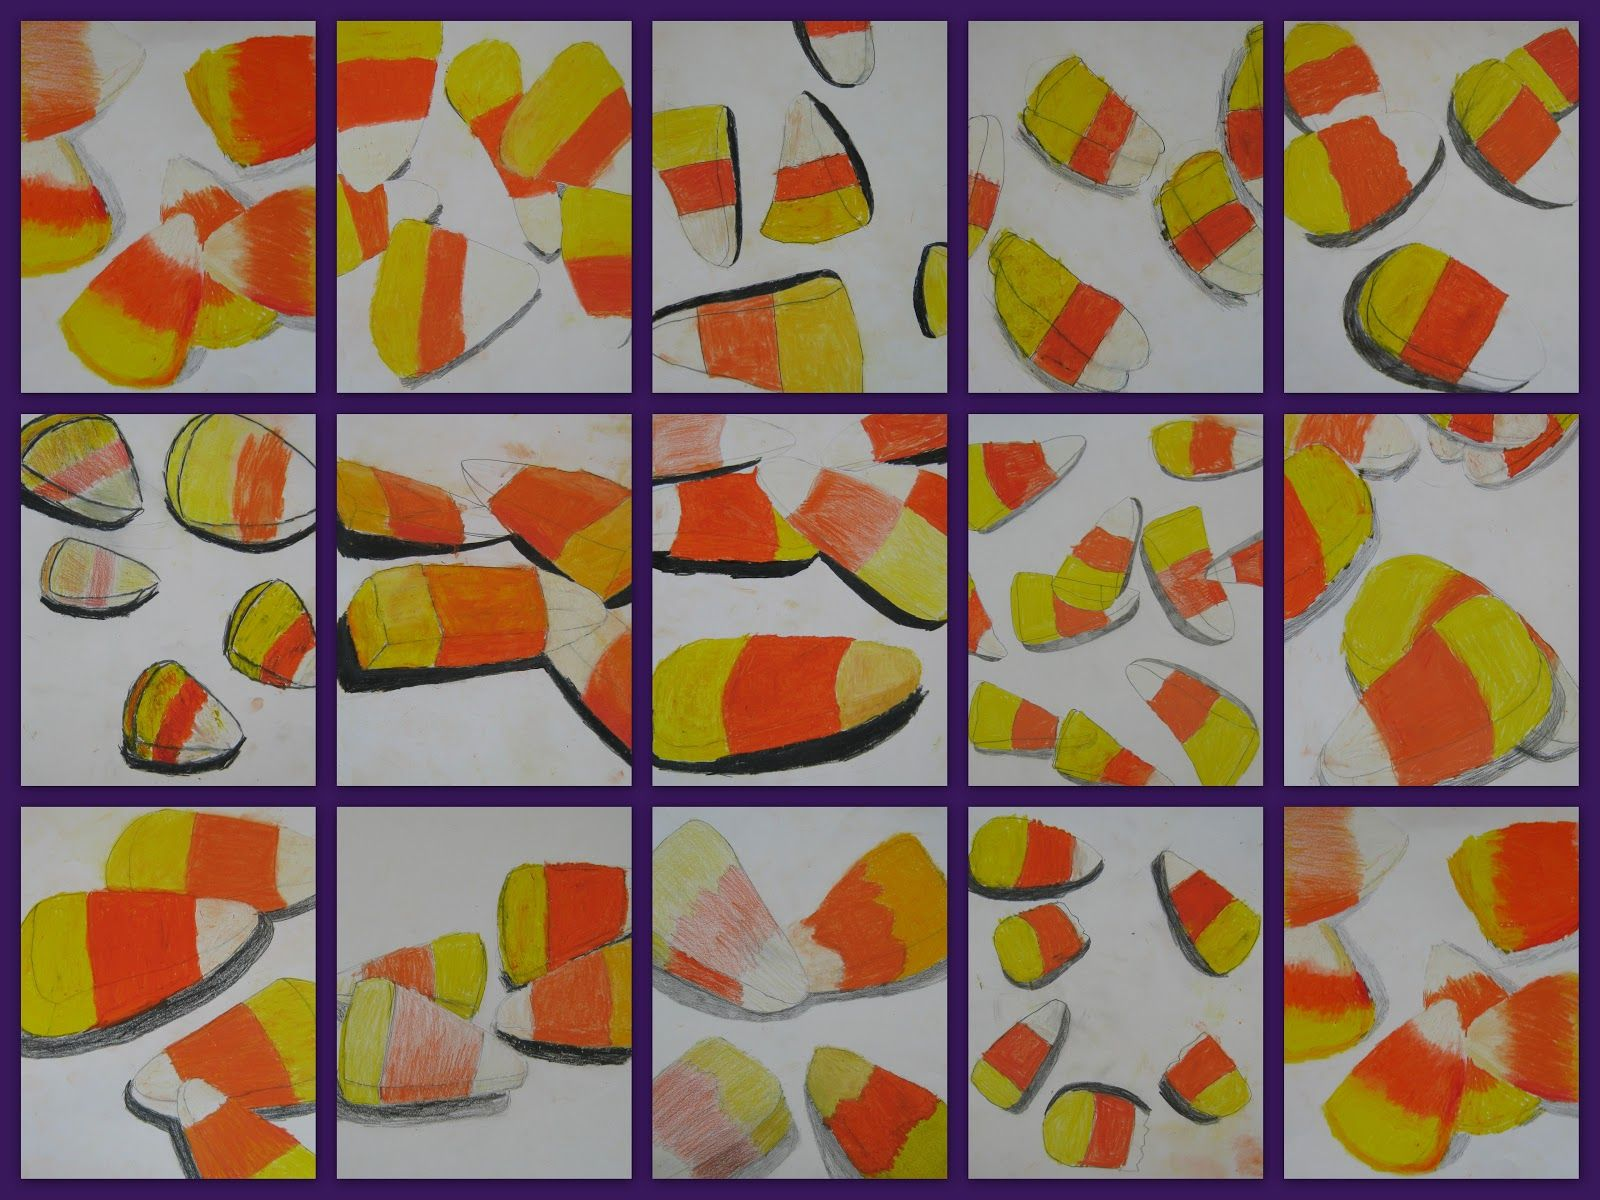 16++ Halloween crafts for middle schoolers ideas